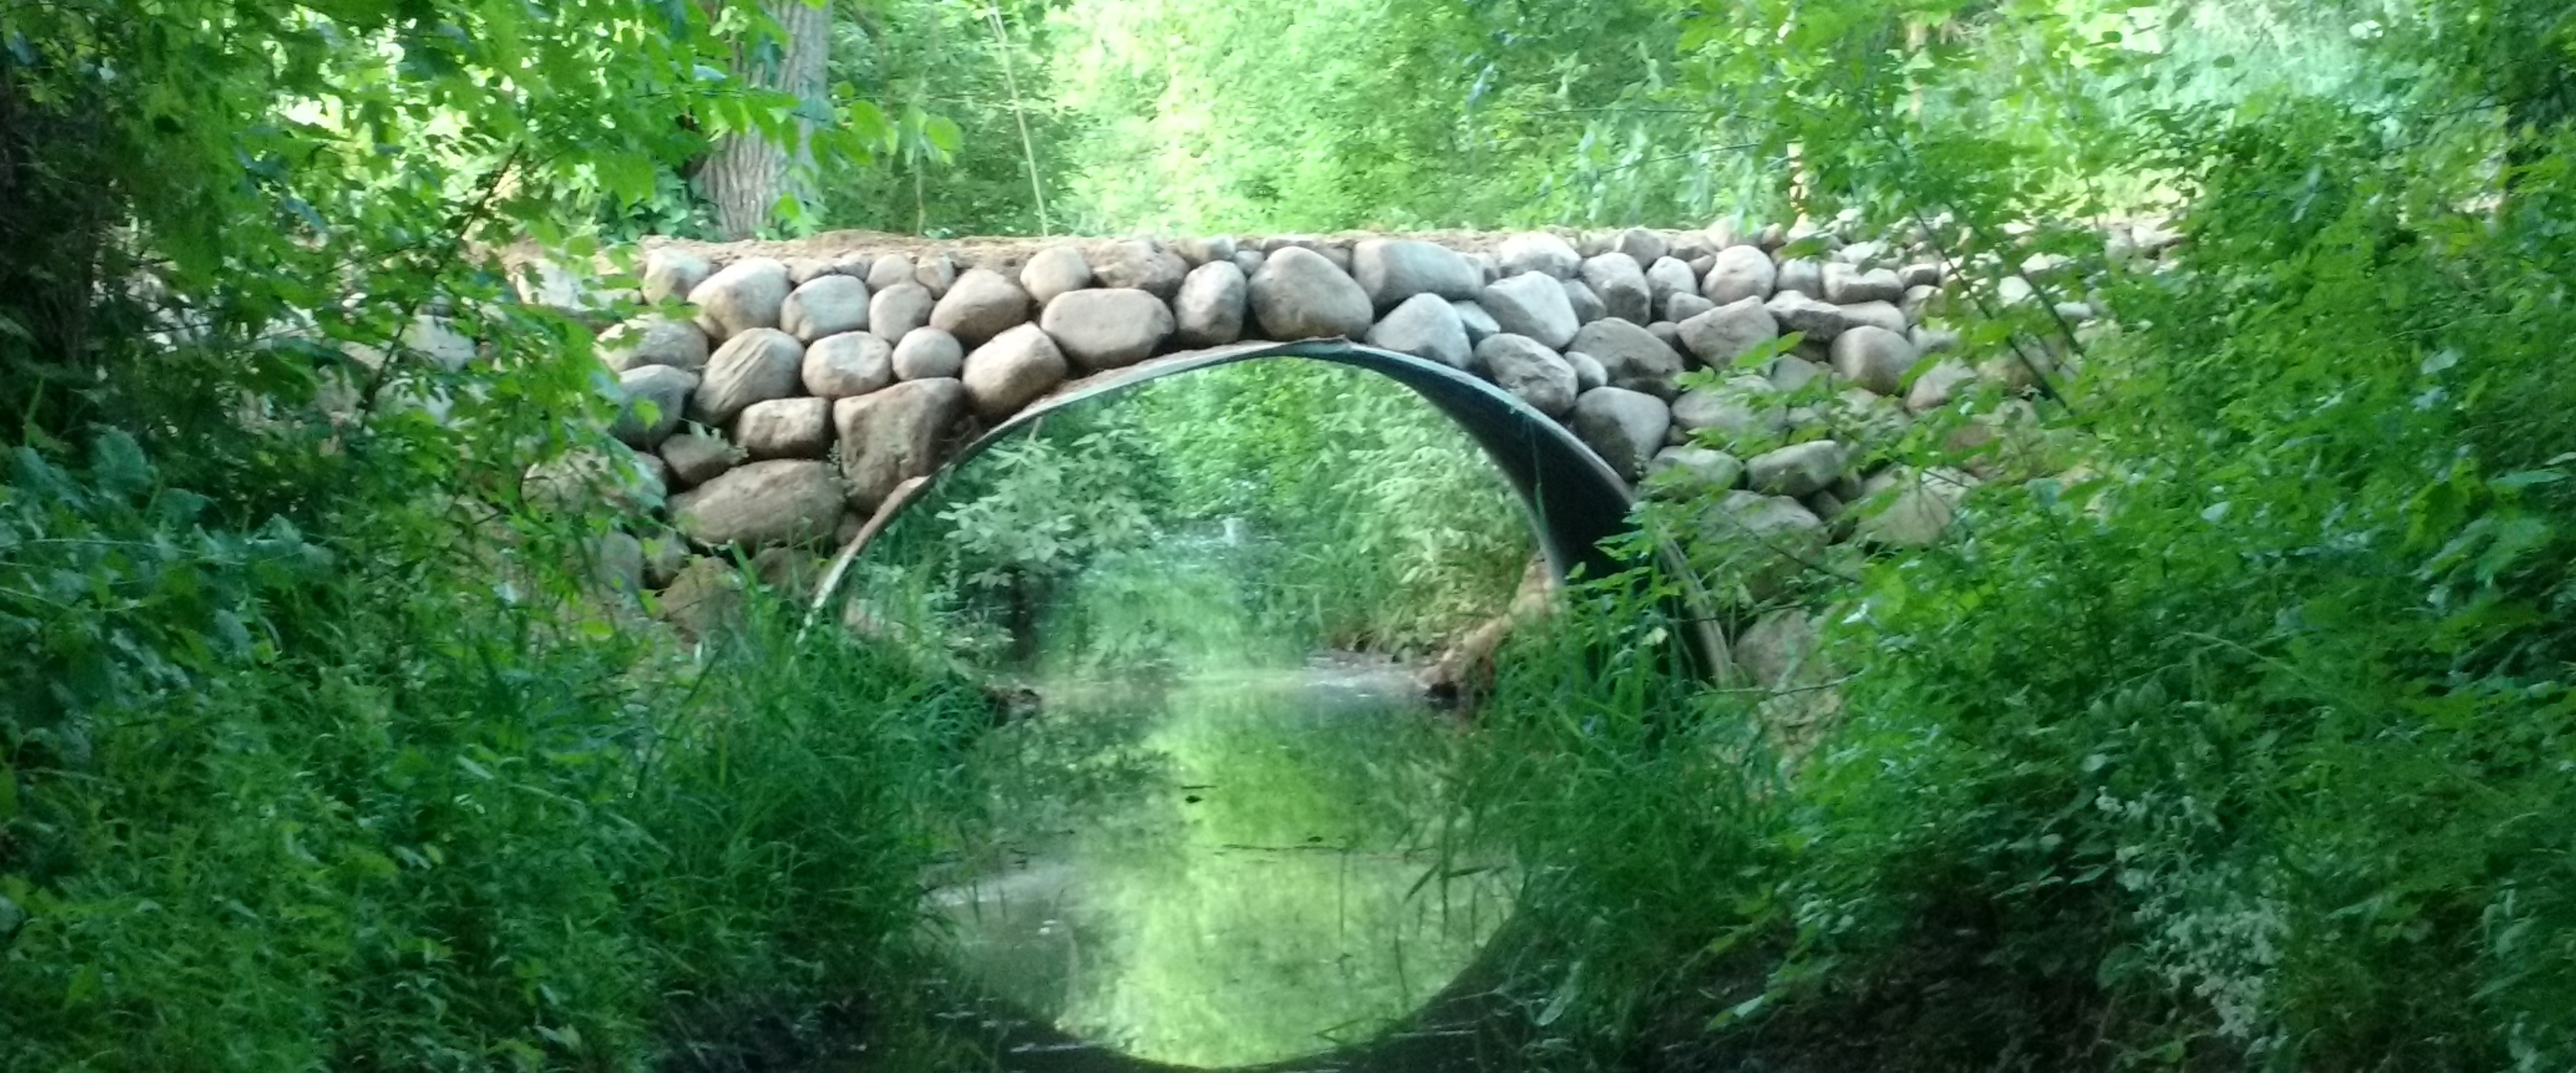 Michigan Excavation and Culverts: Culvert Drainage Pipes